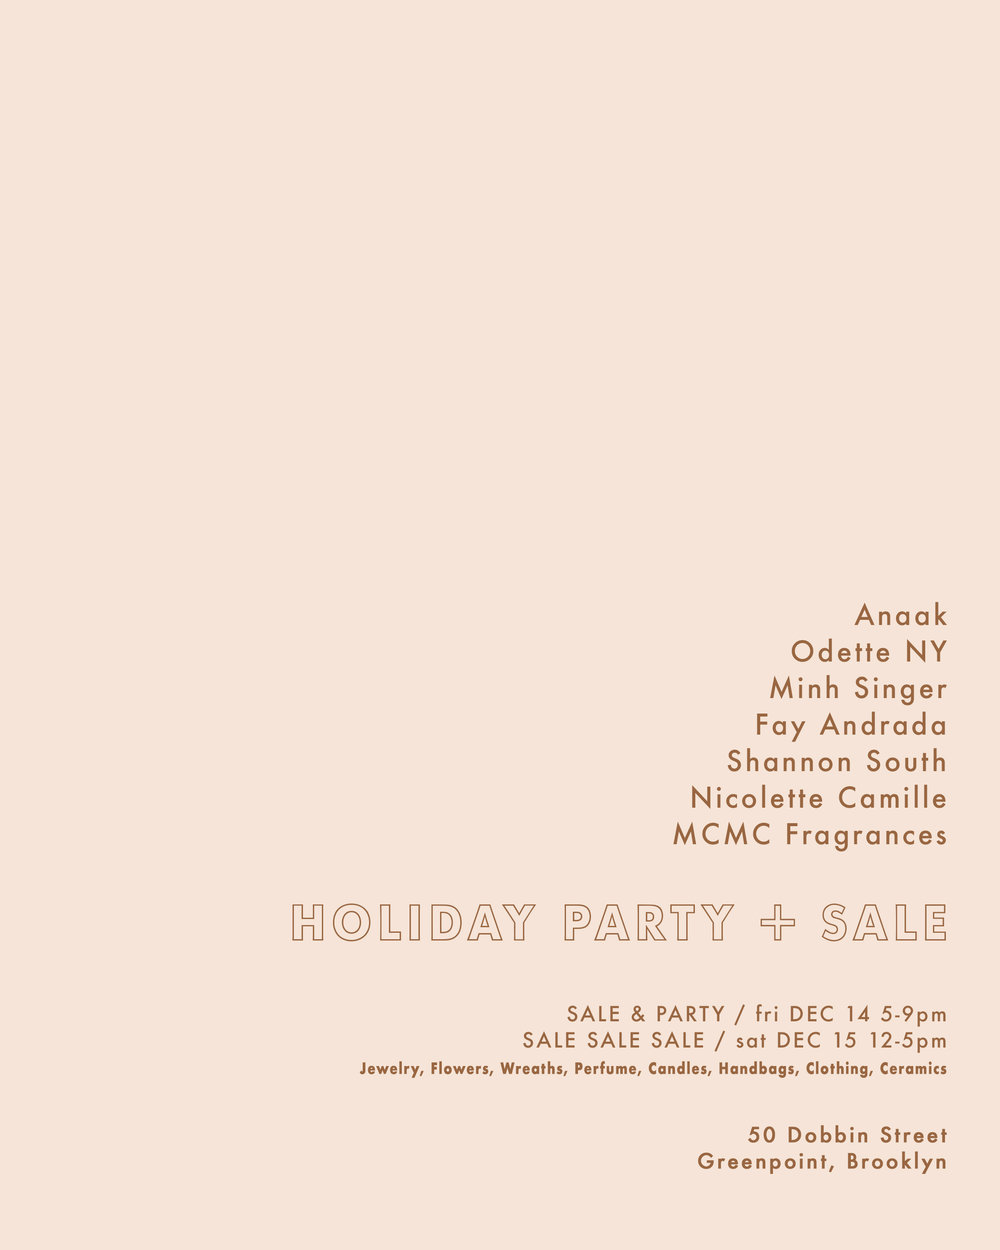 Join us for shopping and champagne at our Greenpoint, Brooklyn studio for our annual holiday party and sale!    Odette New York  50 Dobbin Street Brooklyn, NY    Friday December 14  5-9pm    Saturday December 15  12-5pm  Shop jewelry, perfume, candles, handbags, clothing, ceramics and more. Brands included:  Odette ,  Anaak ,  Fay Andrada ,  MCMC Fragrances ,  Minh Singer ,  Shannon South  and  Nicolette Camille .